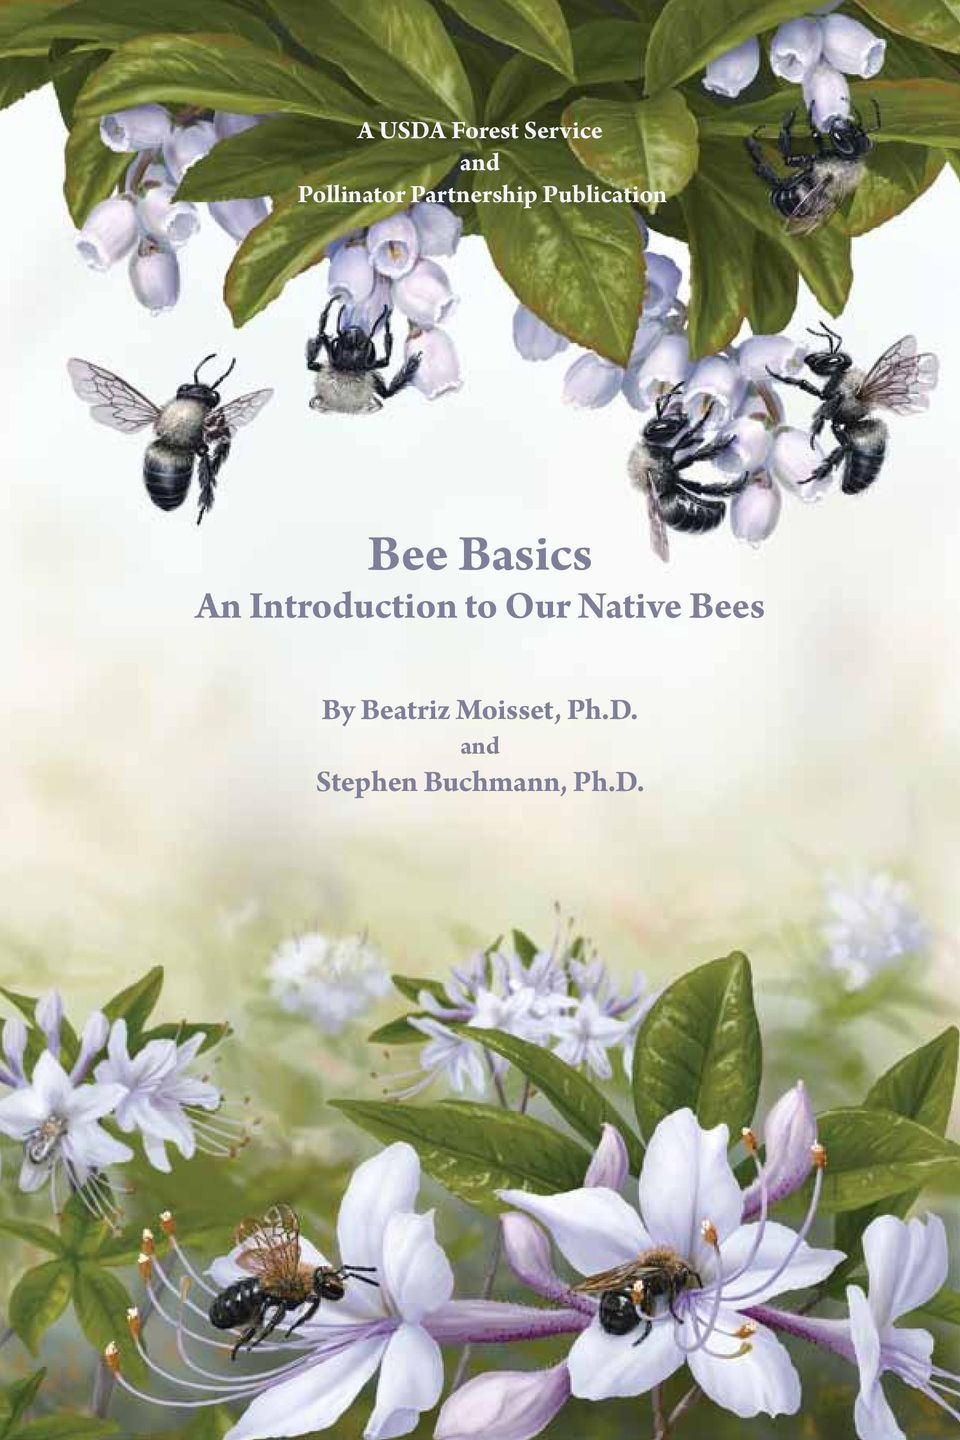 Introduction to Our Native Bees By